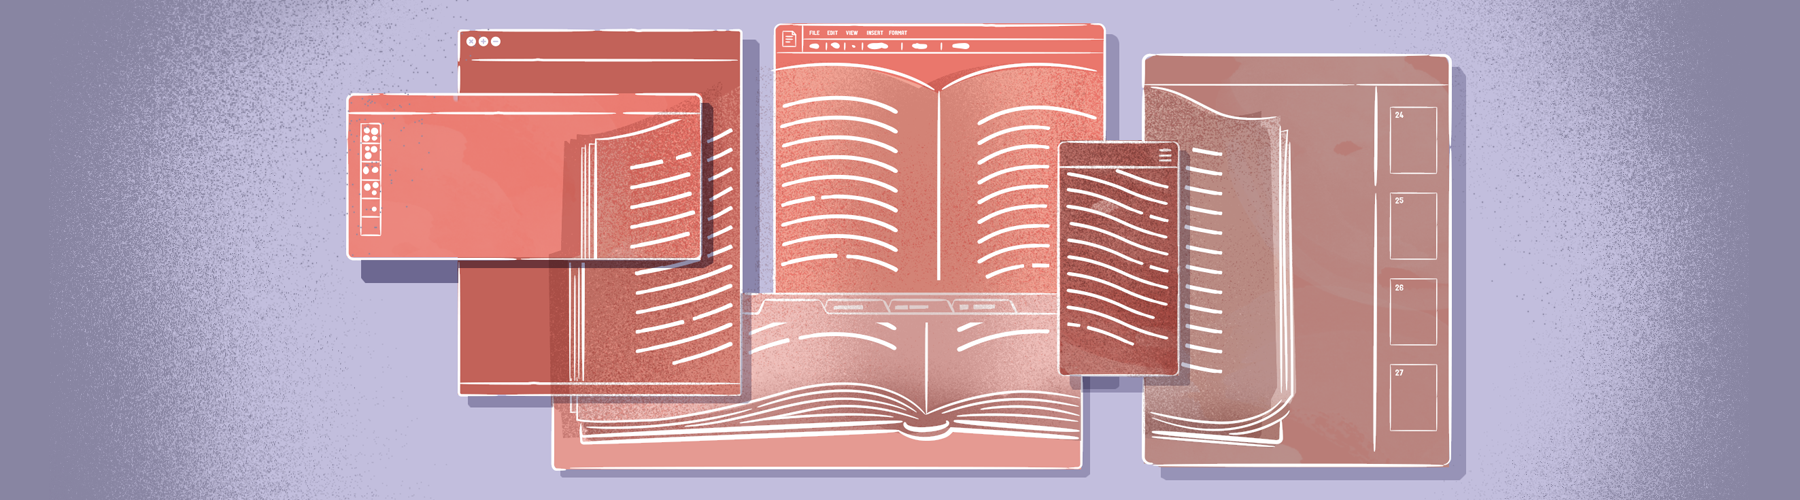 What's the Best Novel Writing Software in 2018?